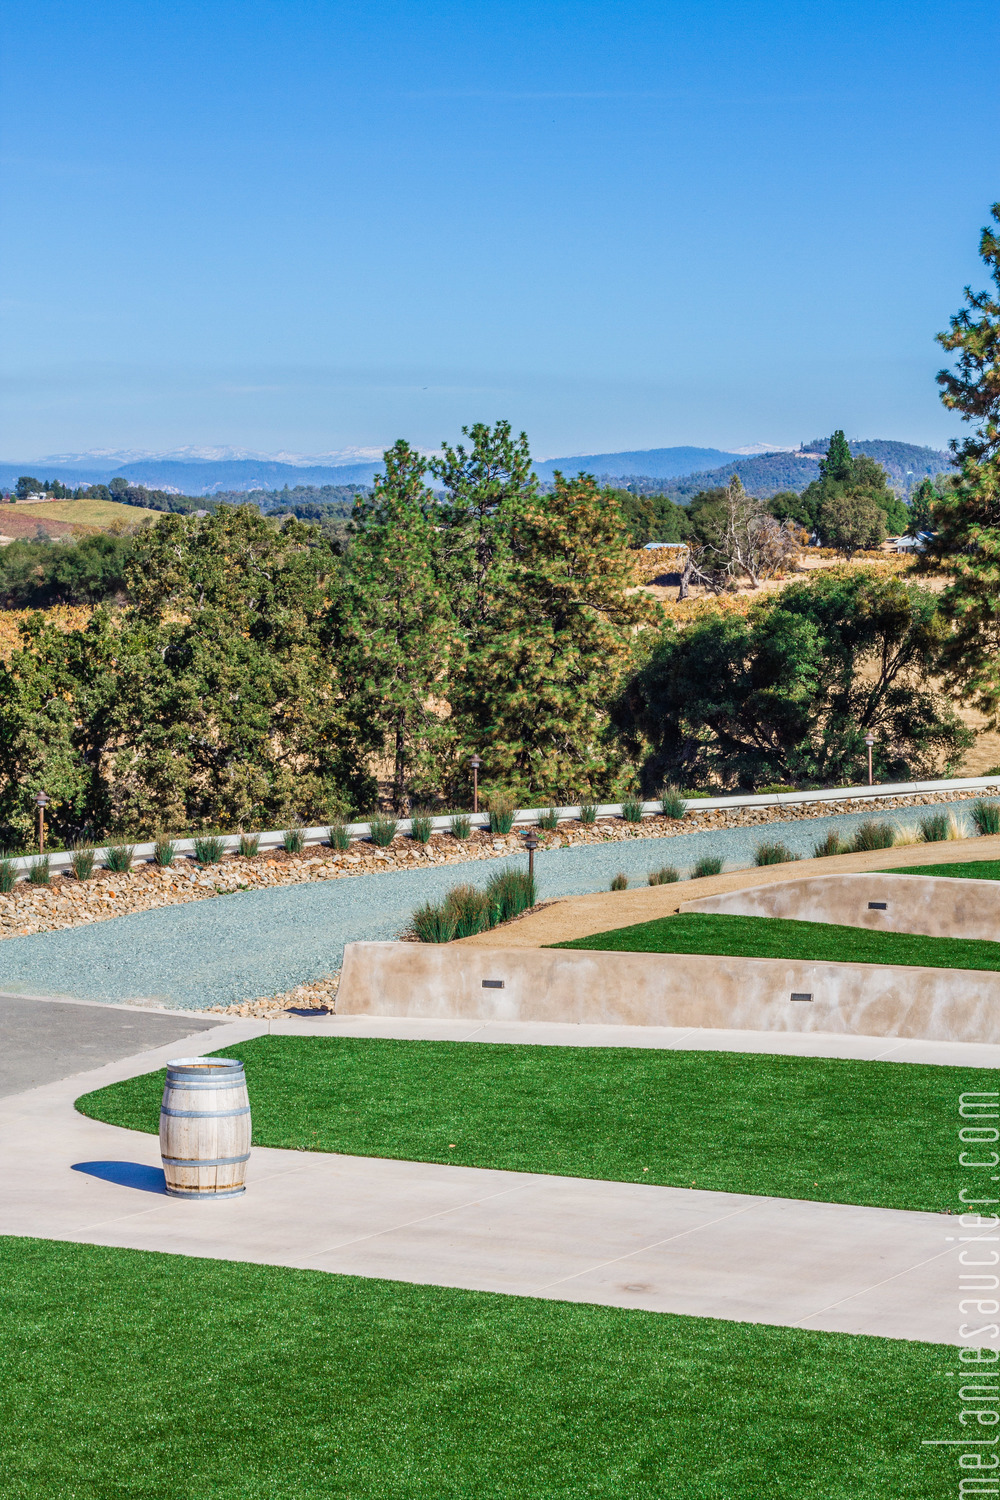 Helwig_Winery_Amador_County-8.jpg